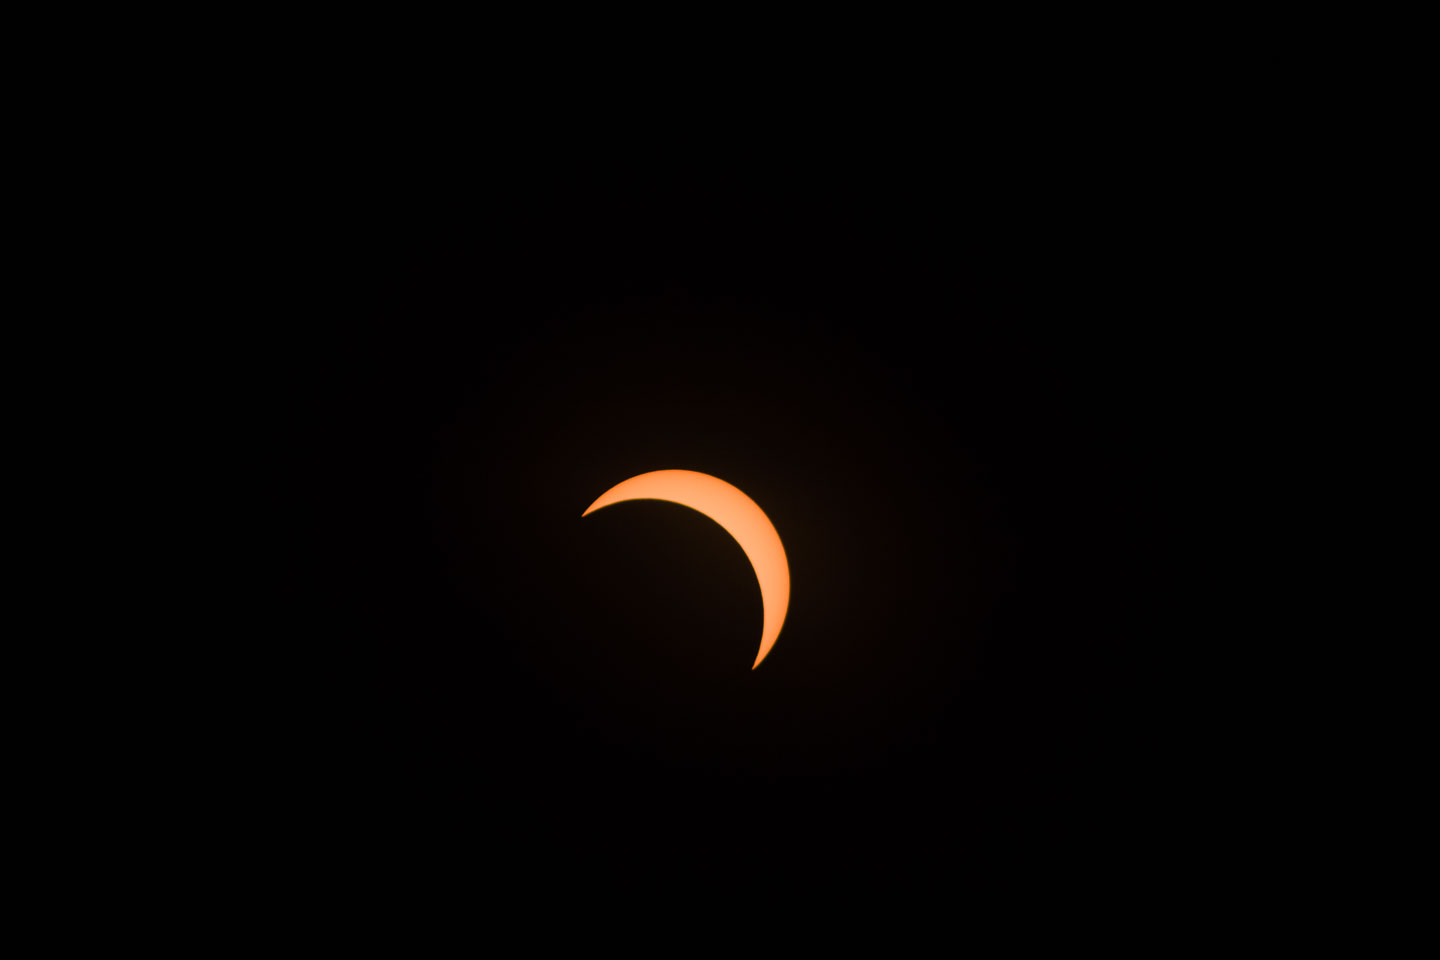 Stage of the solar eclipse